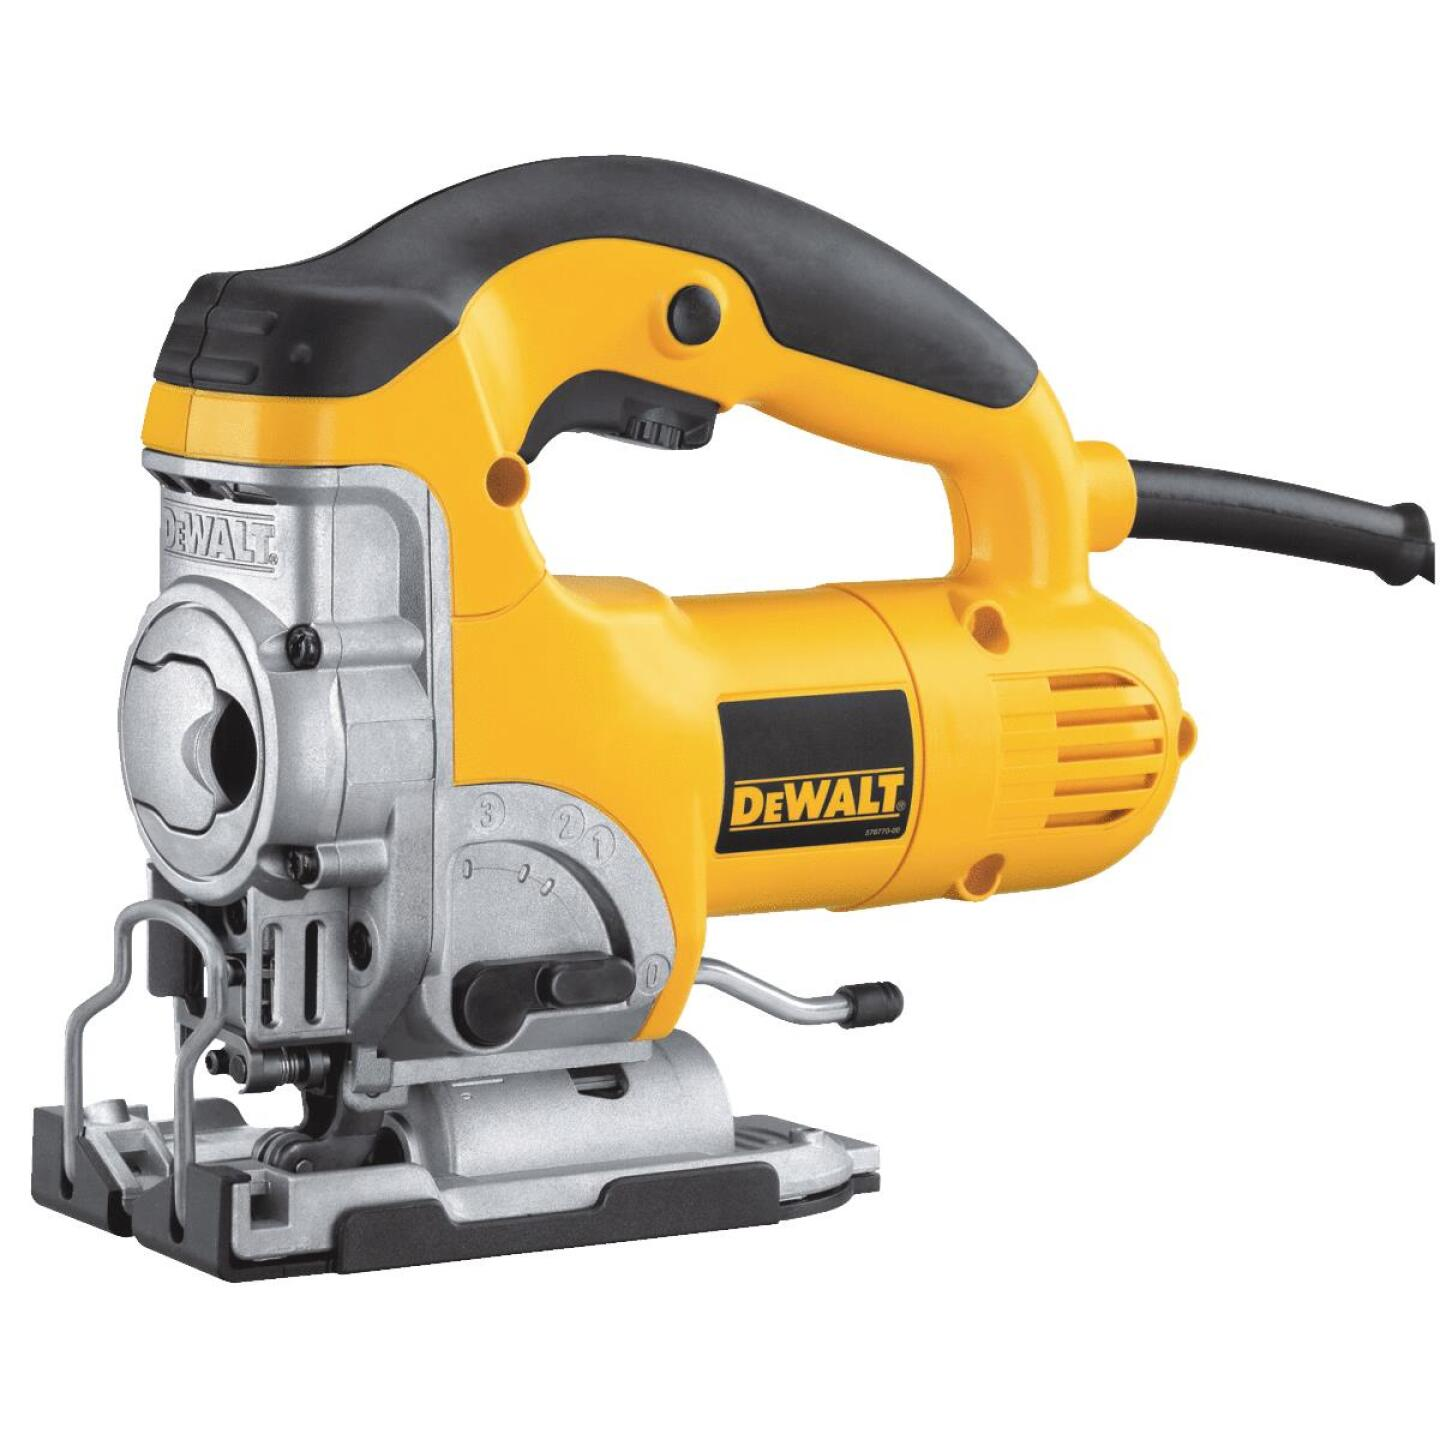 DeWalt 6.5A 4-Position 500 to 3100 SPM Jig Saw Image 1